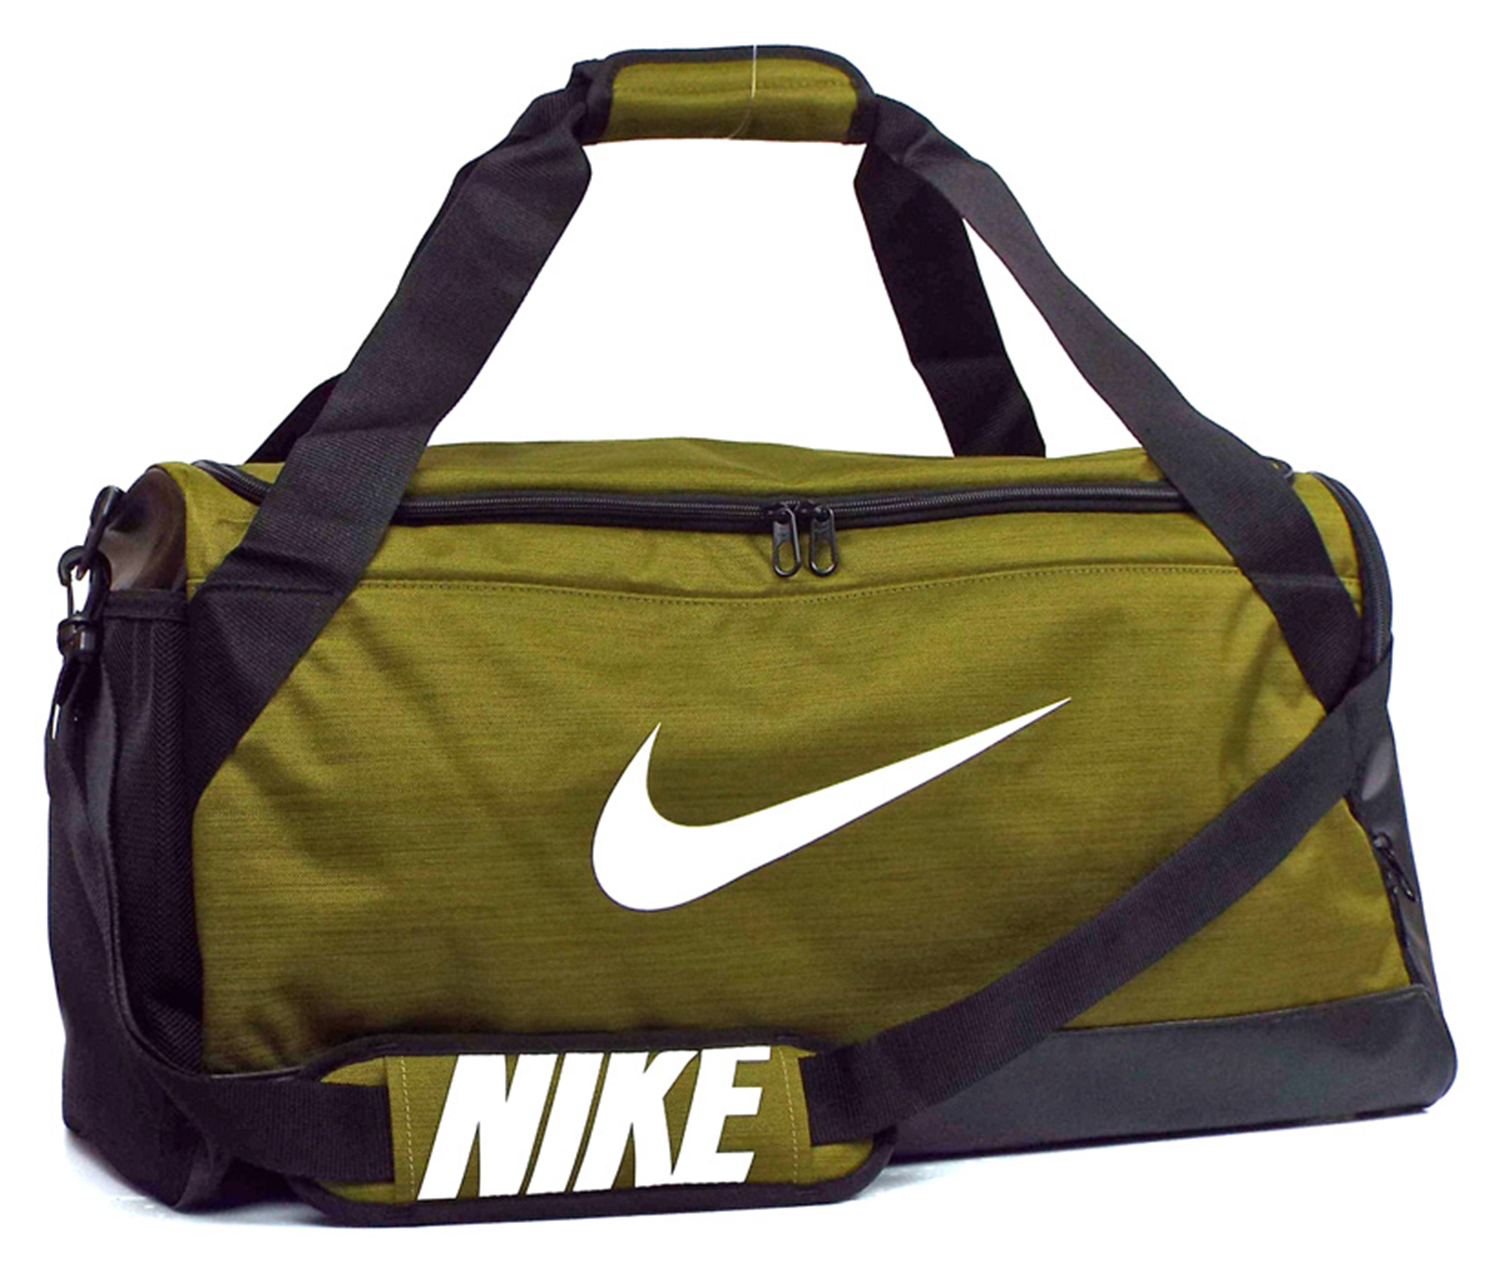 Nike Brasilia (Medium) Training Duffel Bag Сумки BA5334 399 купите в ... 3bf08c8189a9b